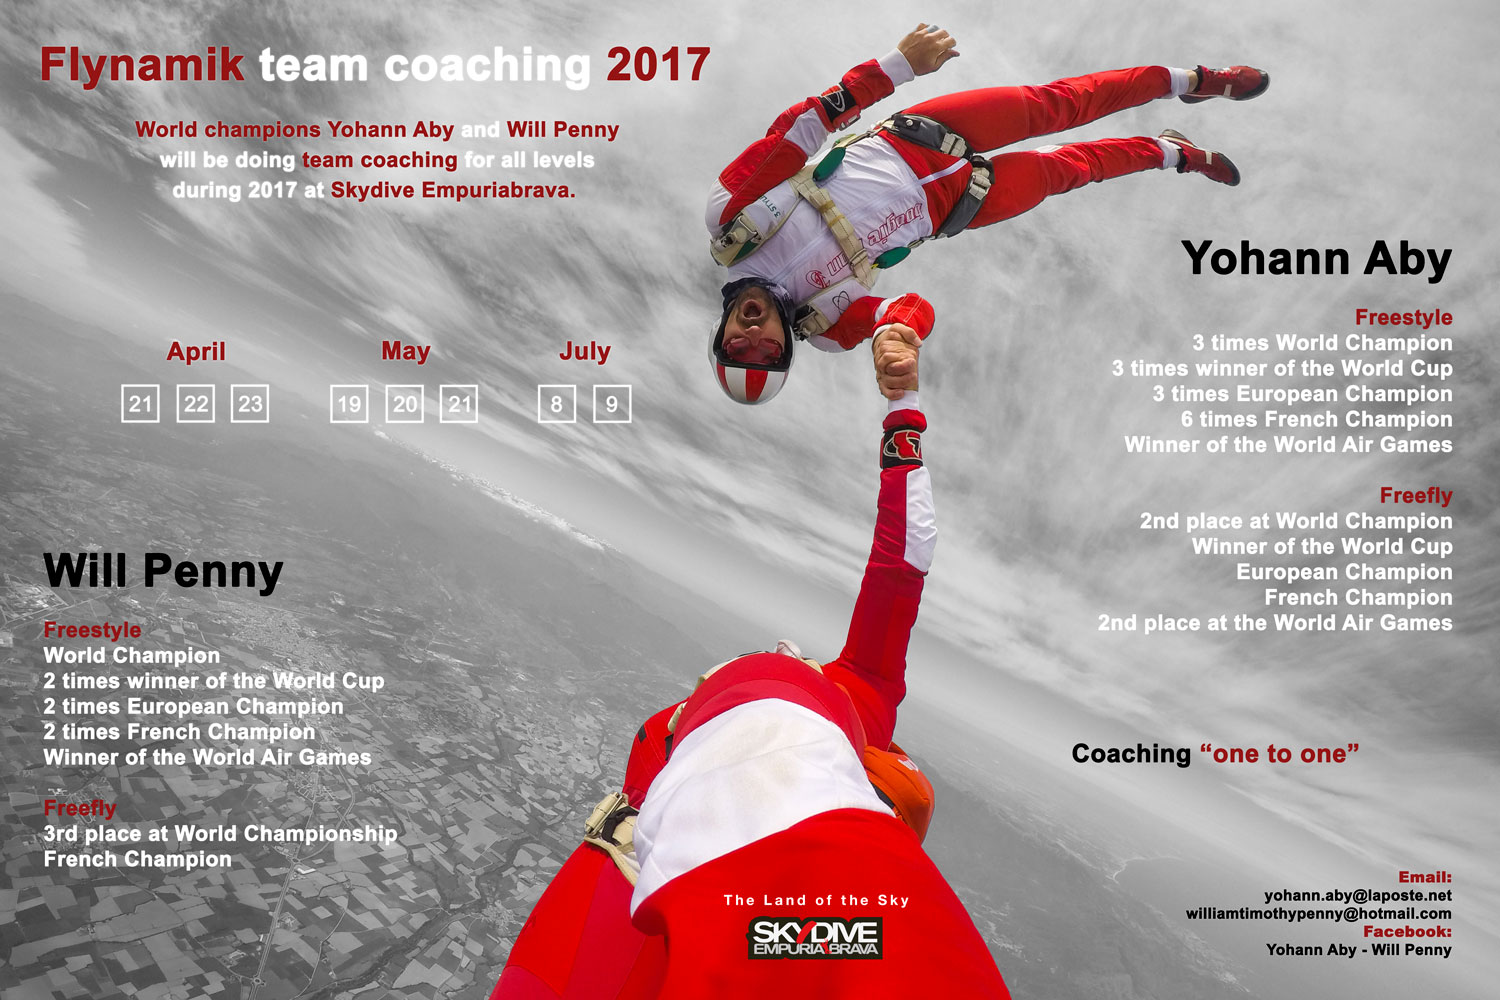 Flynamik team coaching 2017